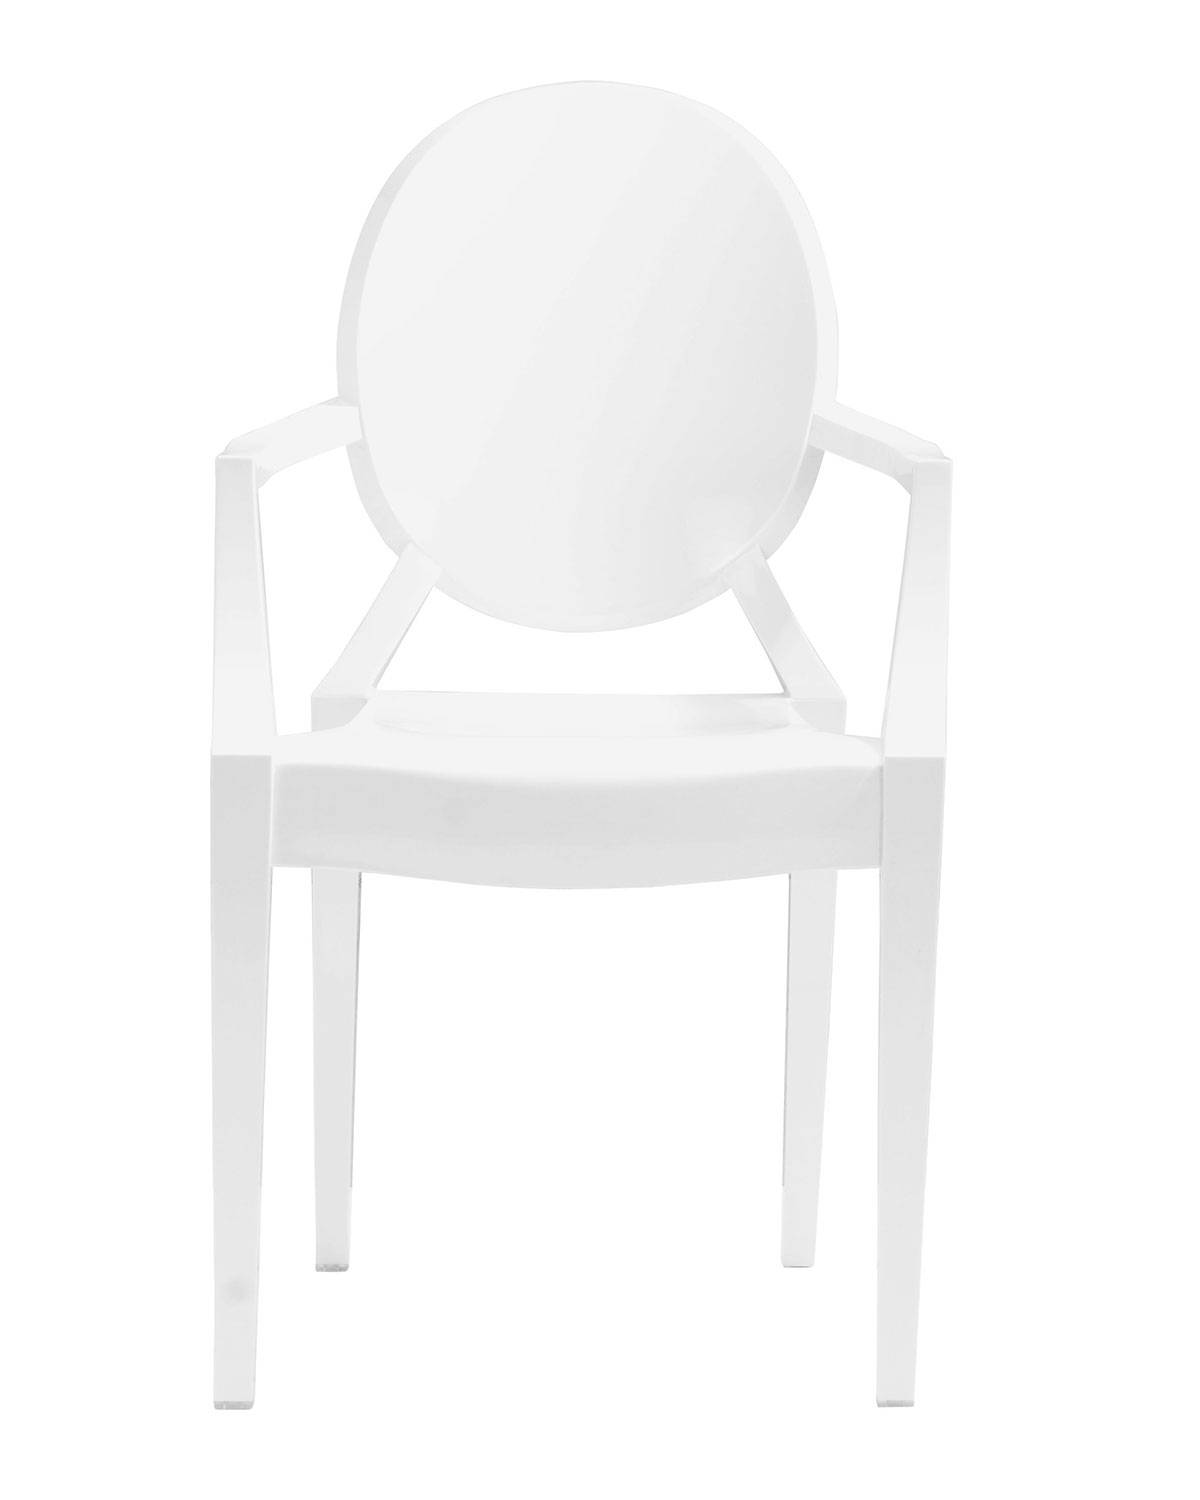 Anime Dining Chair, Set of 2